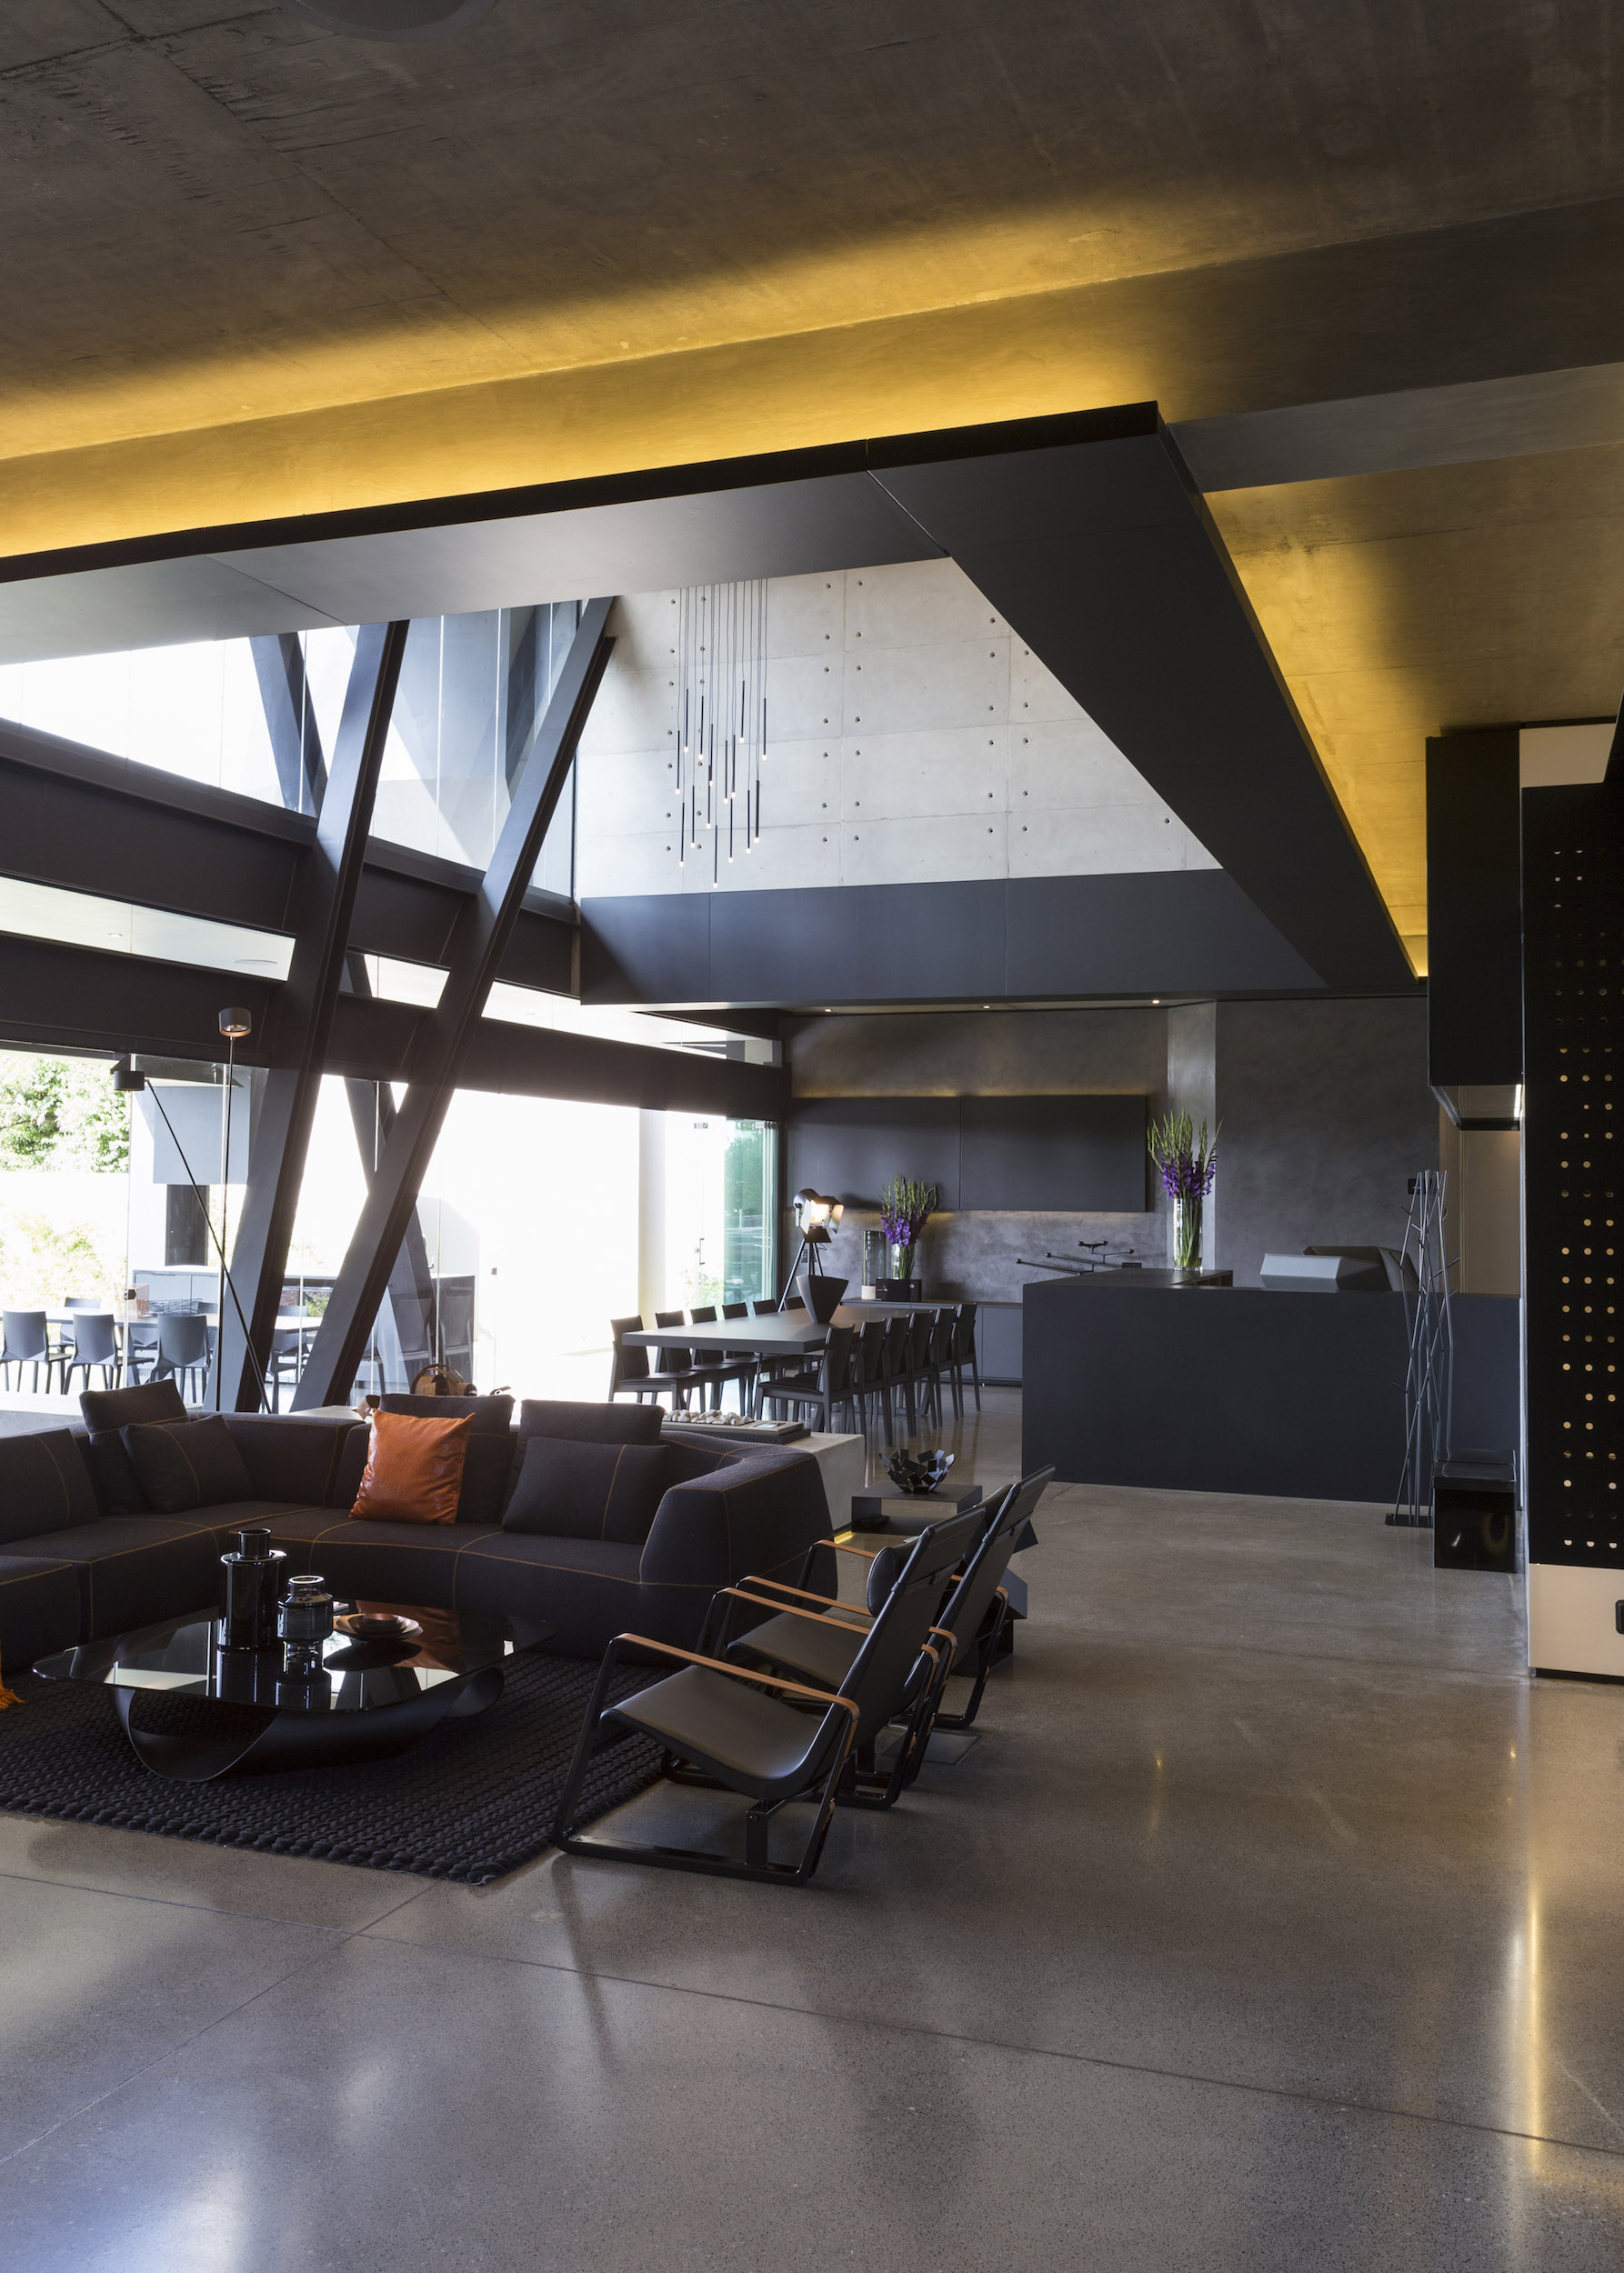 Kloof Road Masterpiece House in Johannesburg by Nico van der Meulen Architects-18